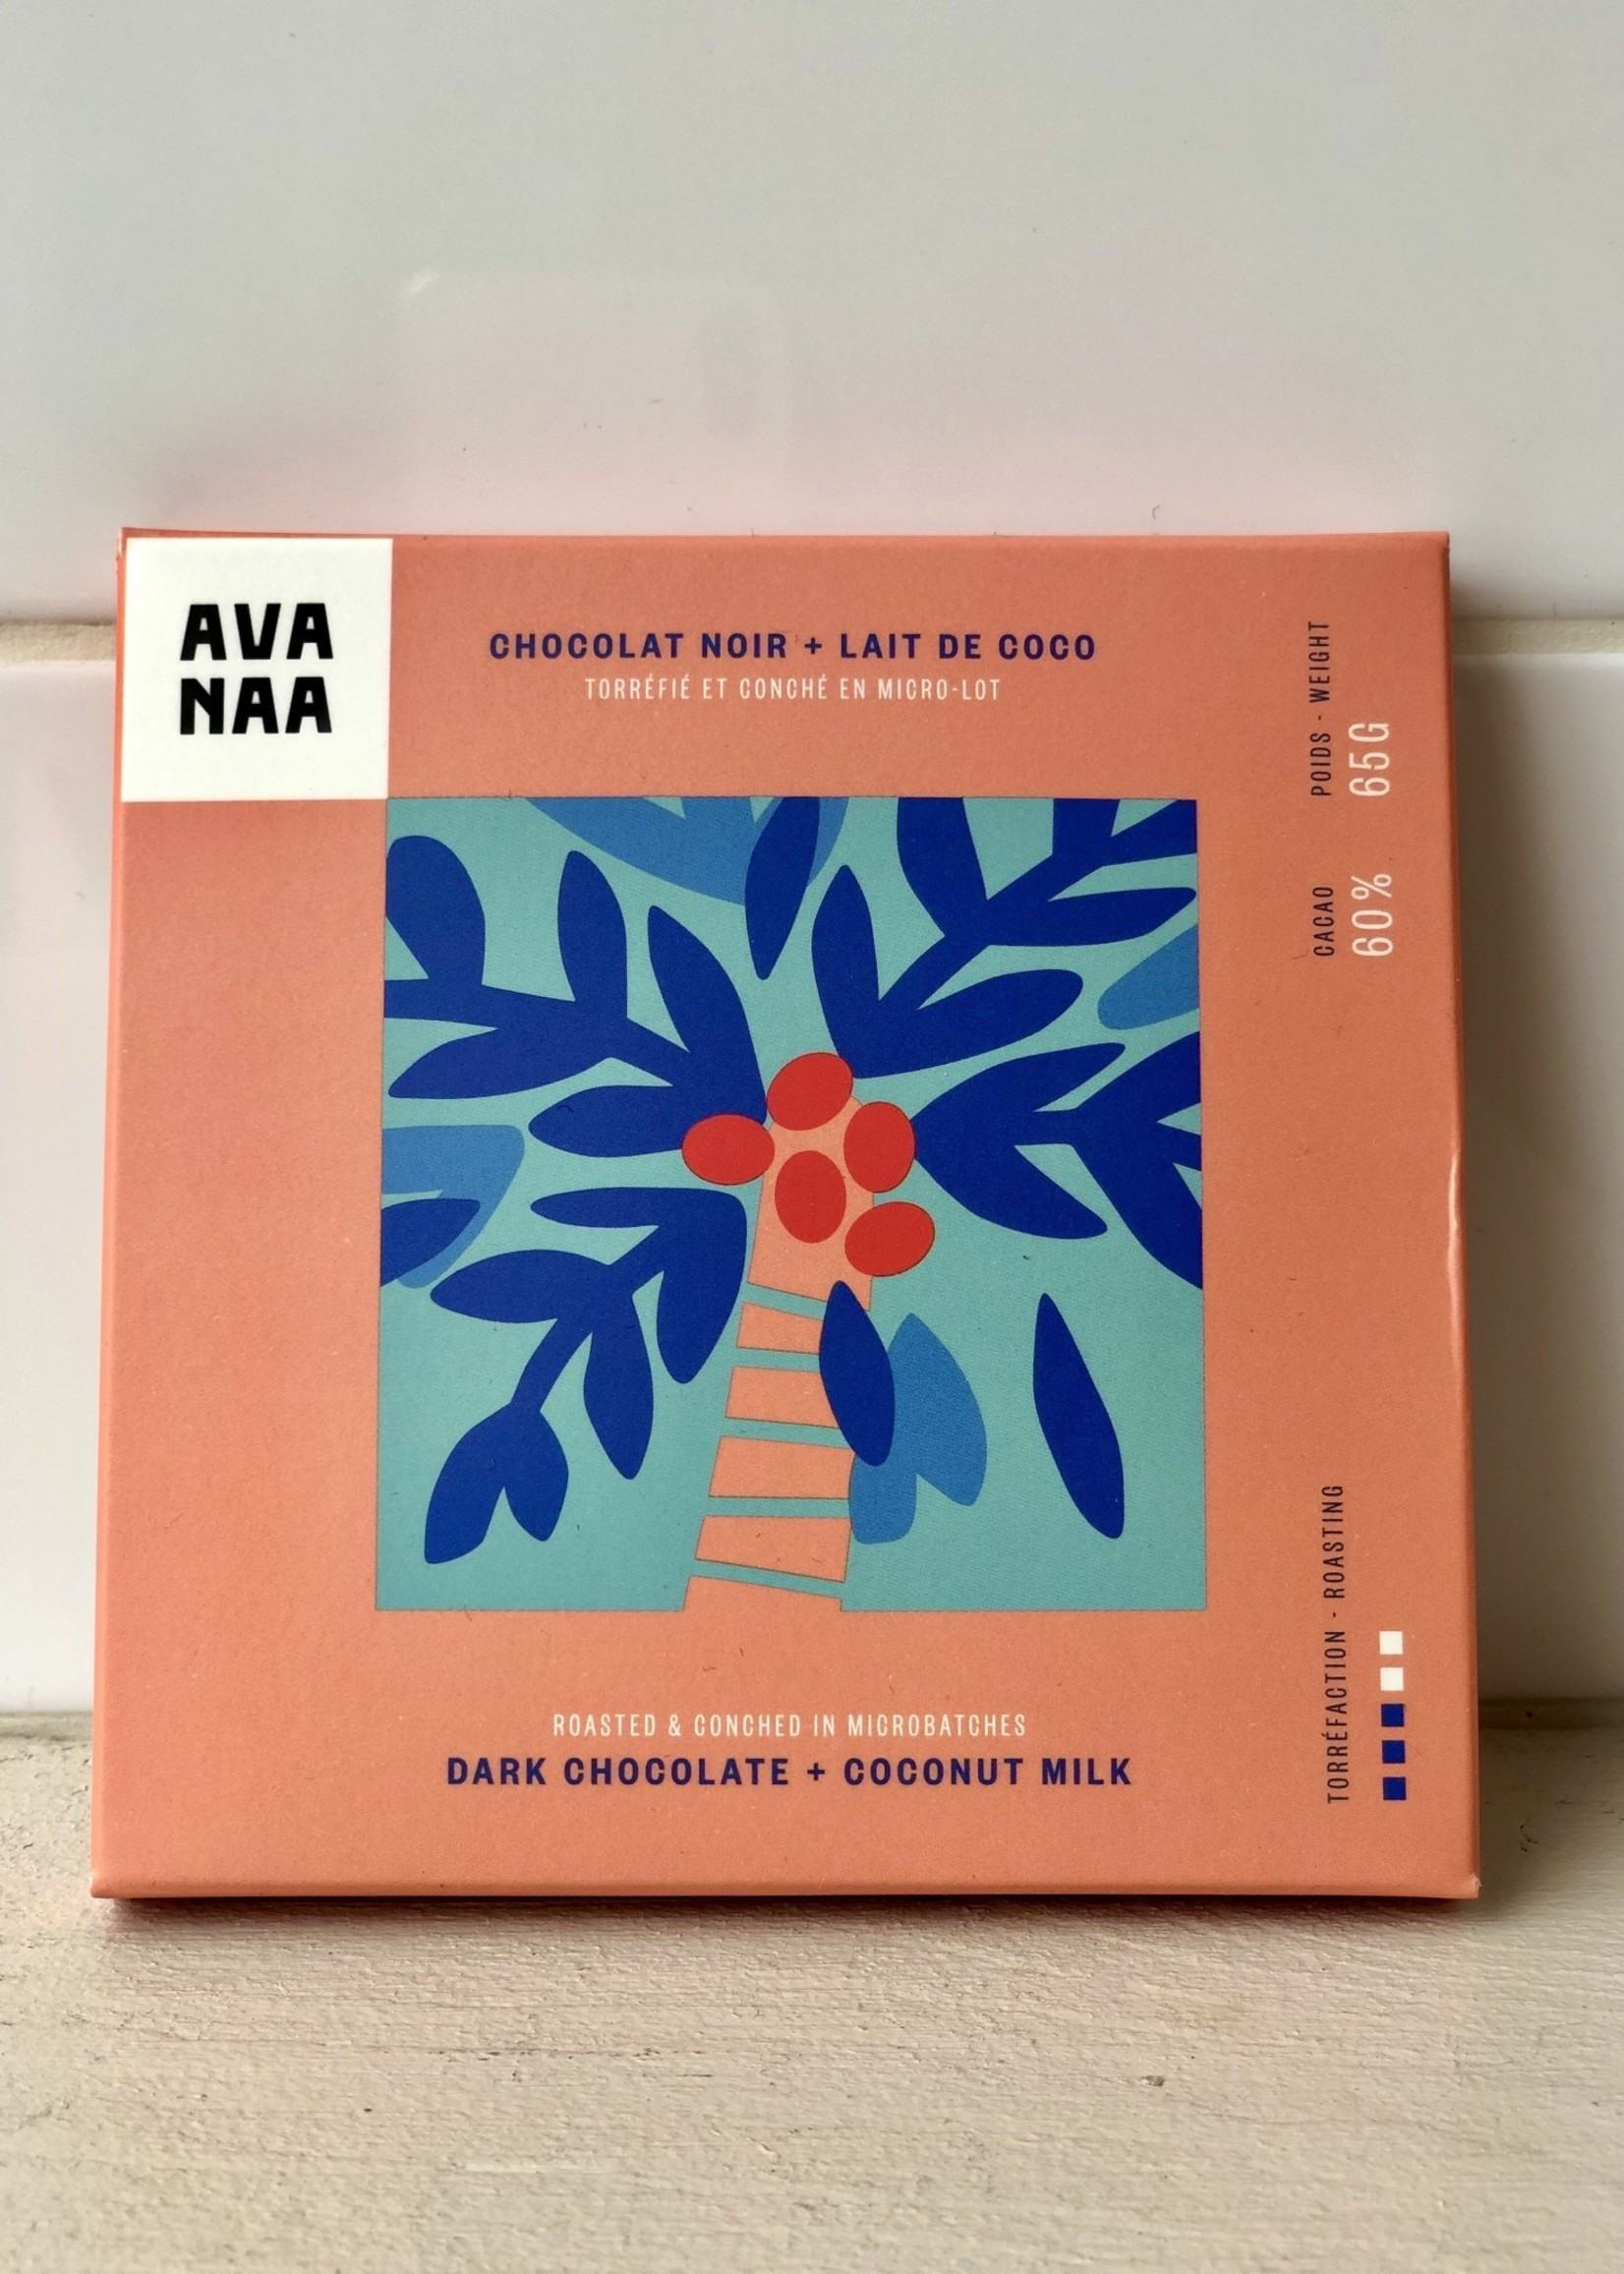 Avanaa Chocolate bars by Avanaa